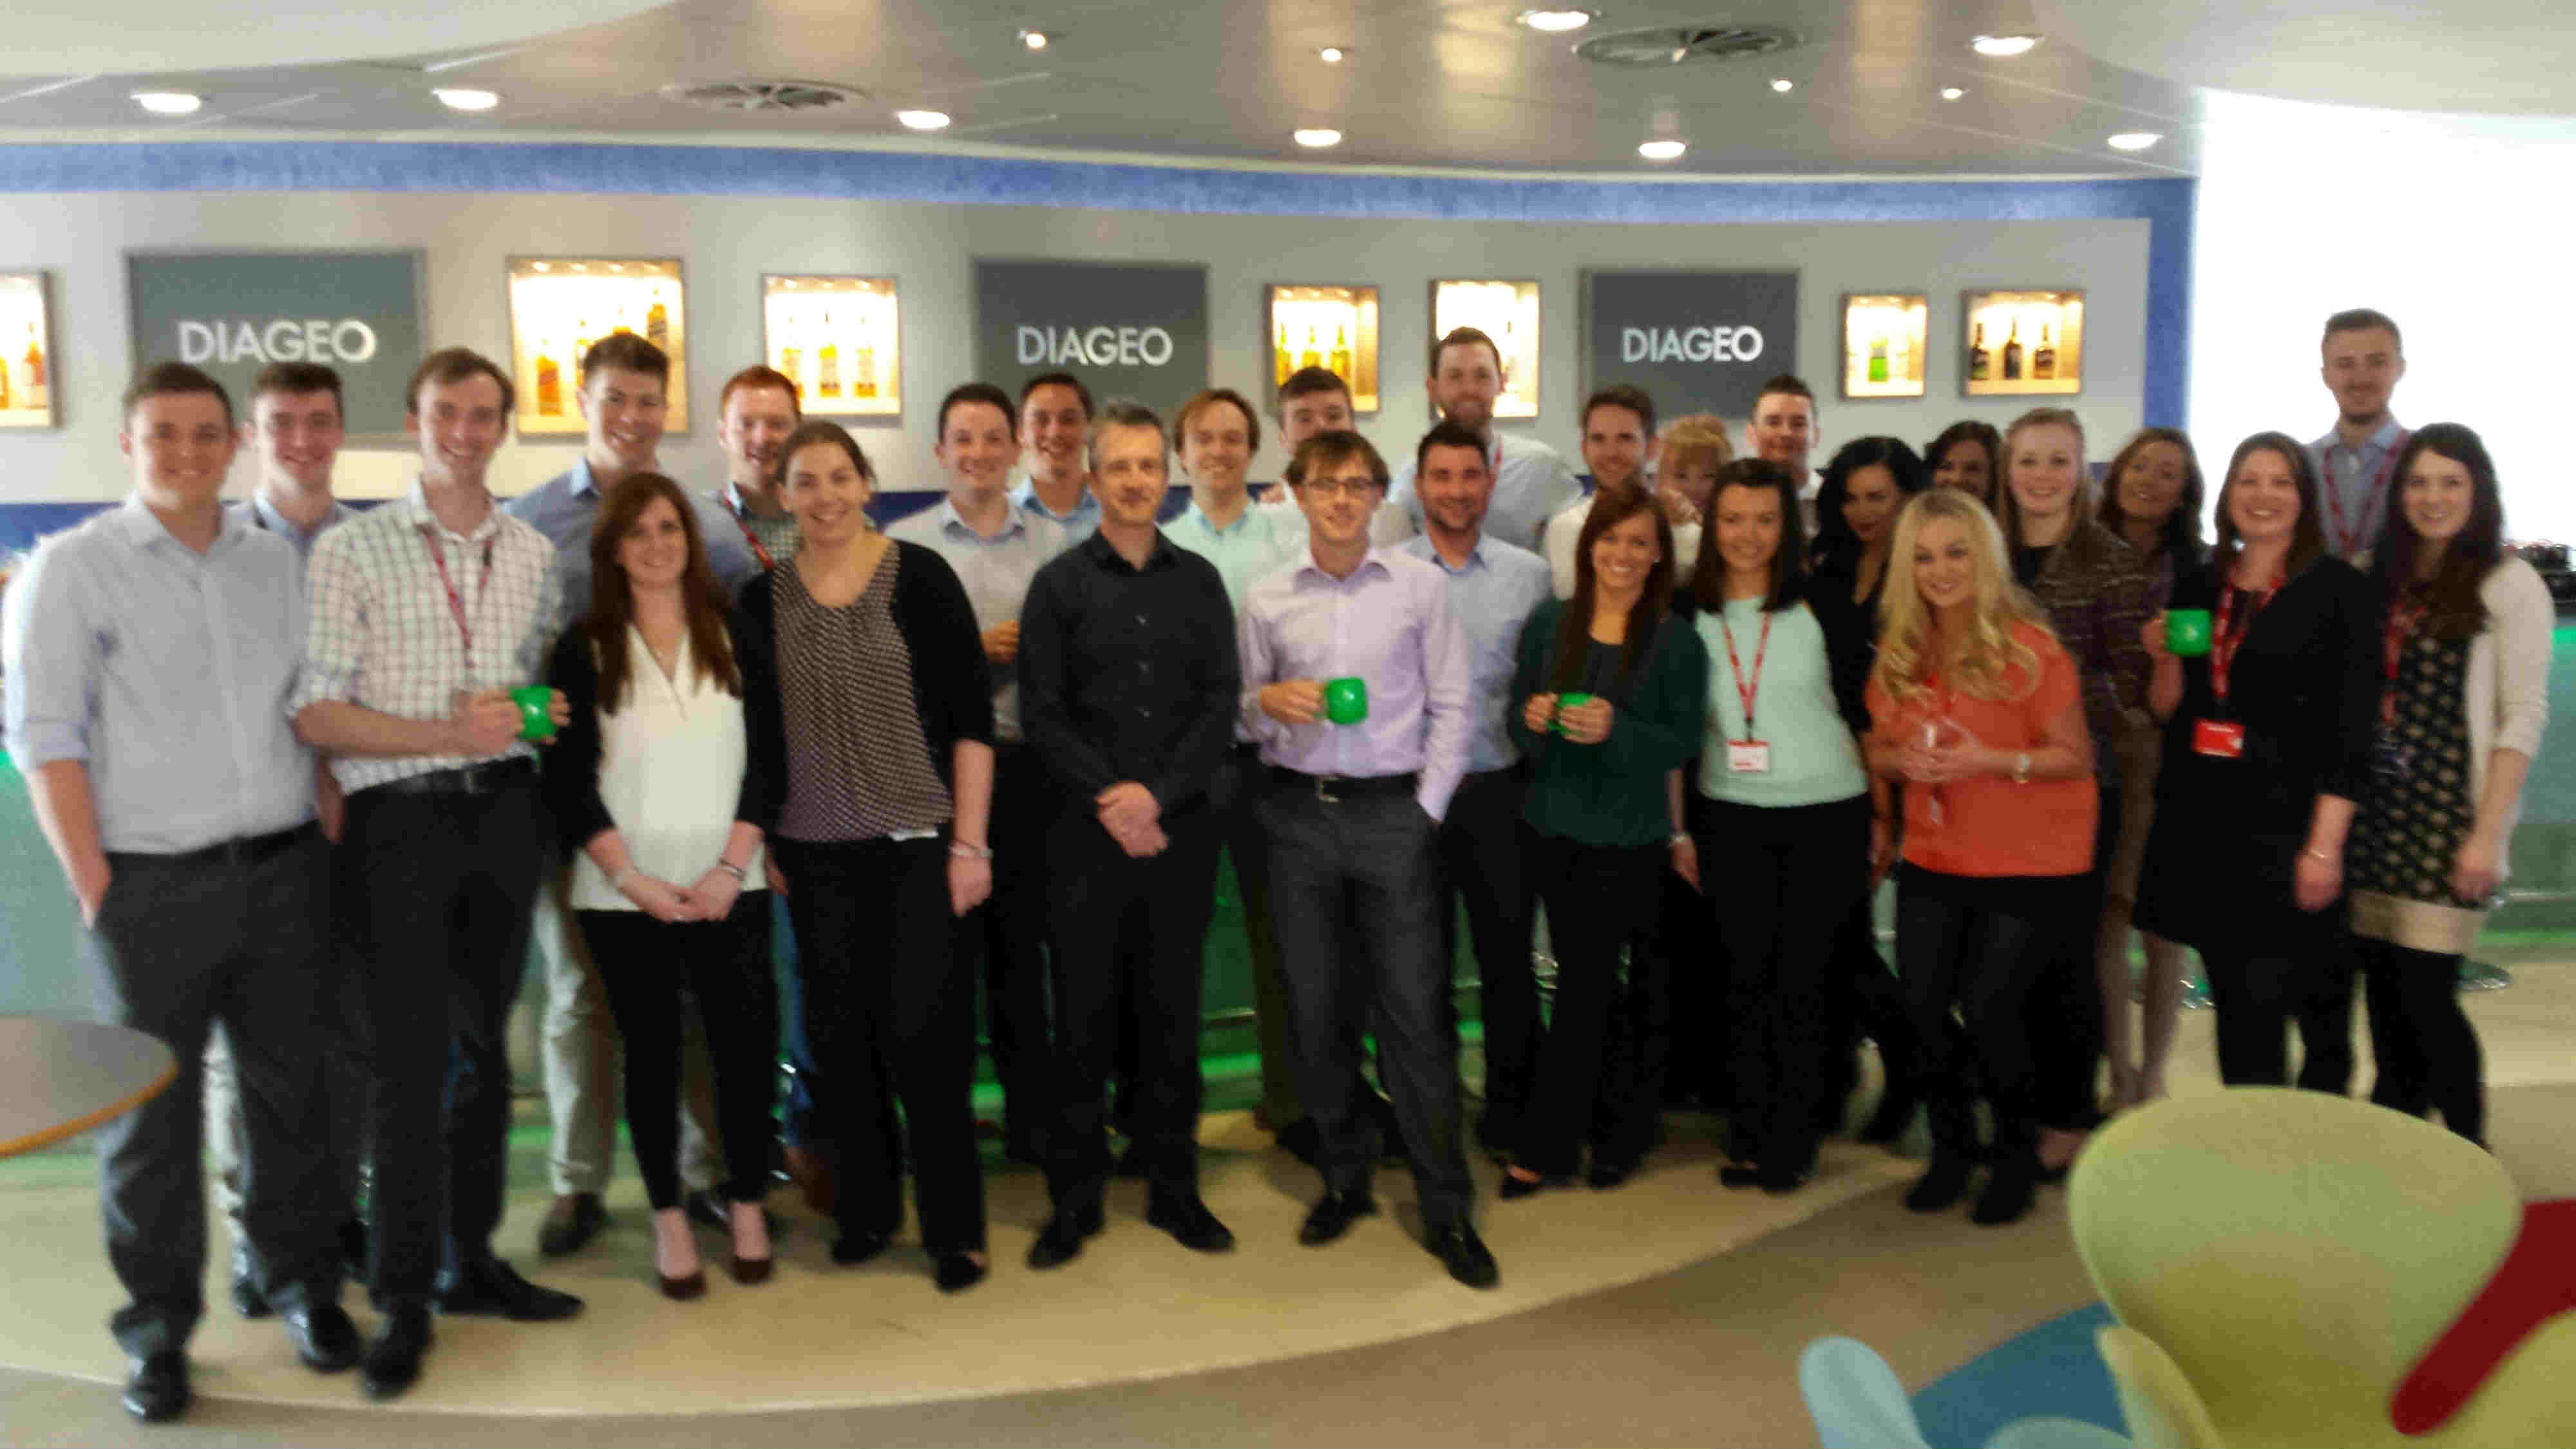 The DRIVE Behind Diageo's Young Leaders